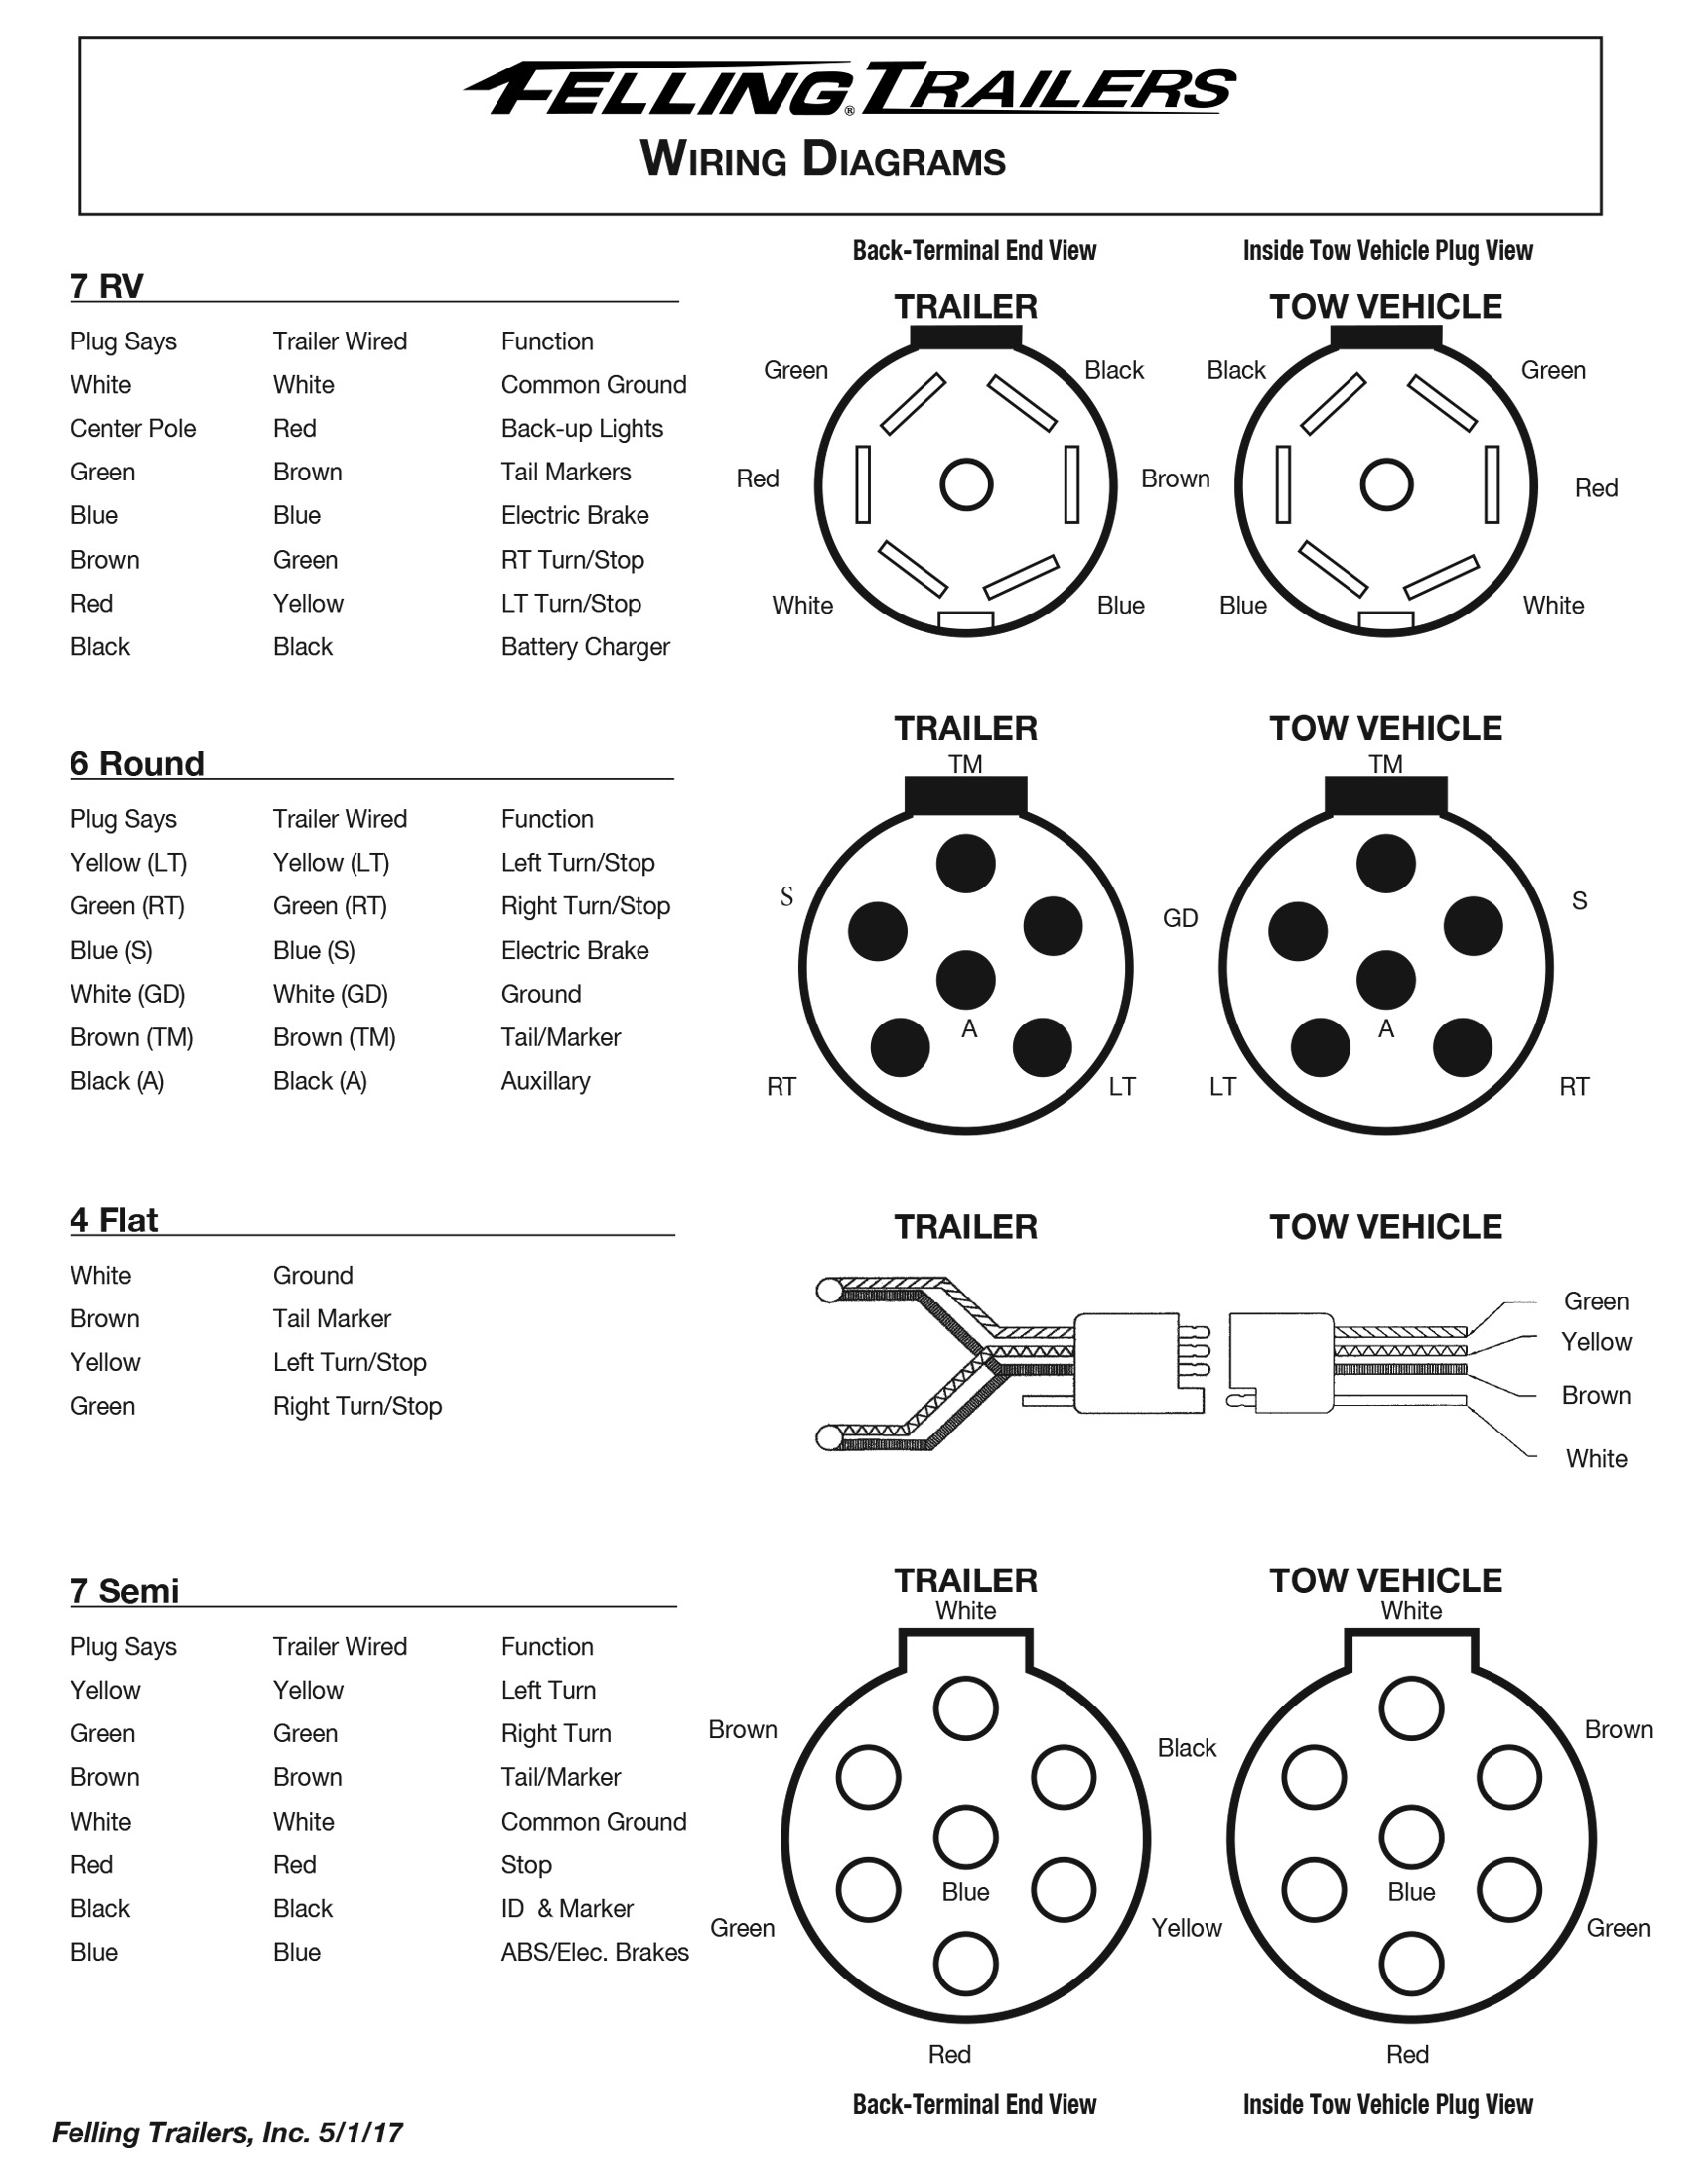 Service- Felling Trailers Wiring Diagrams, Wheel Toque - Trailer Wiring Plug Diagram 7